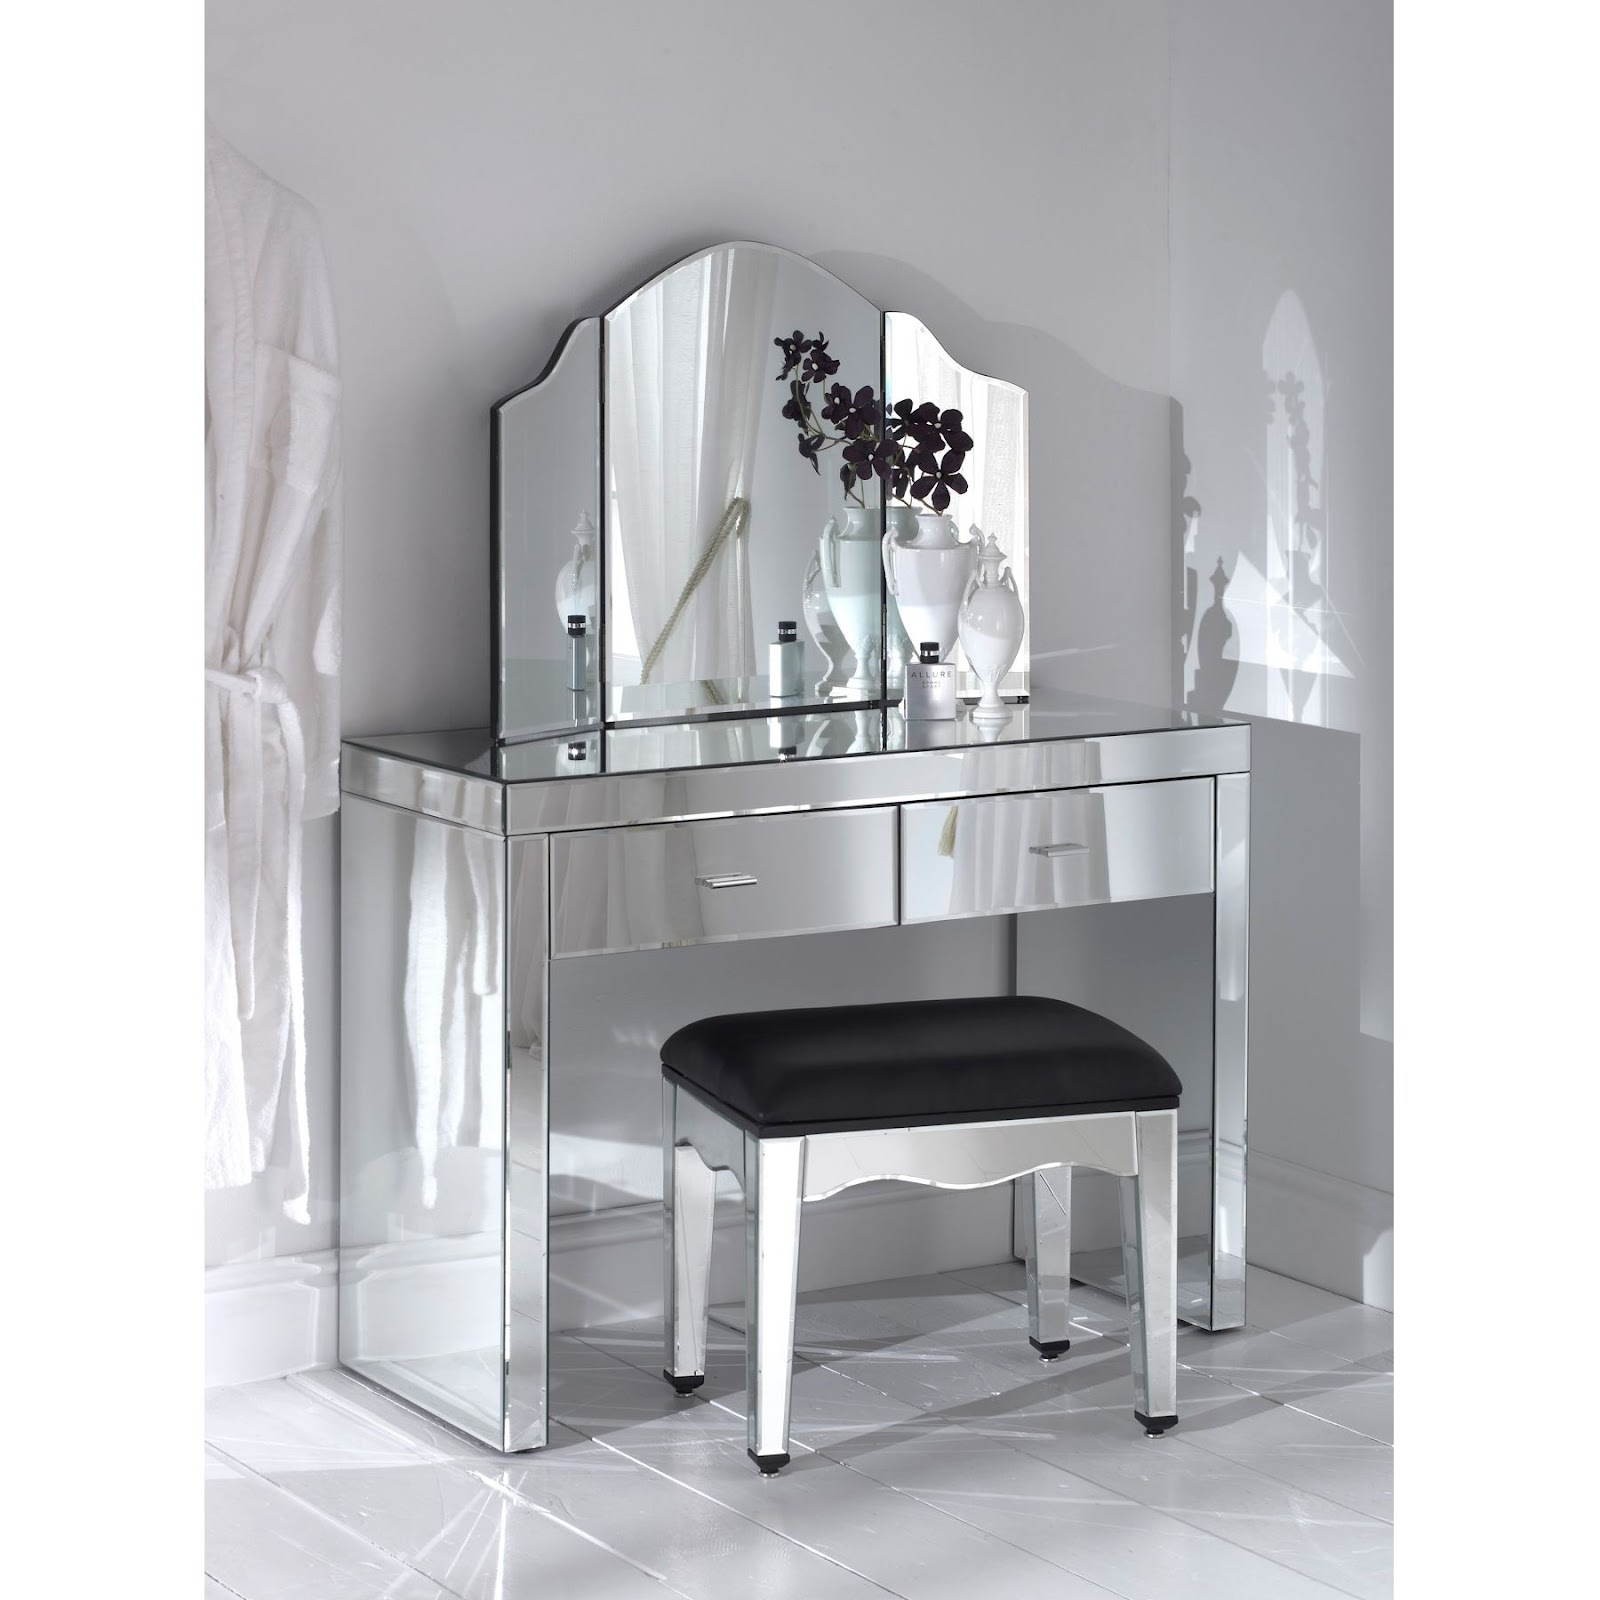 Bedroom dressing table decorating ideas - Modern Dressing Table Furniture Designs Interior Design Bedroom Prices Wardrobe